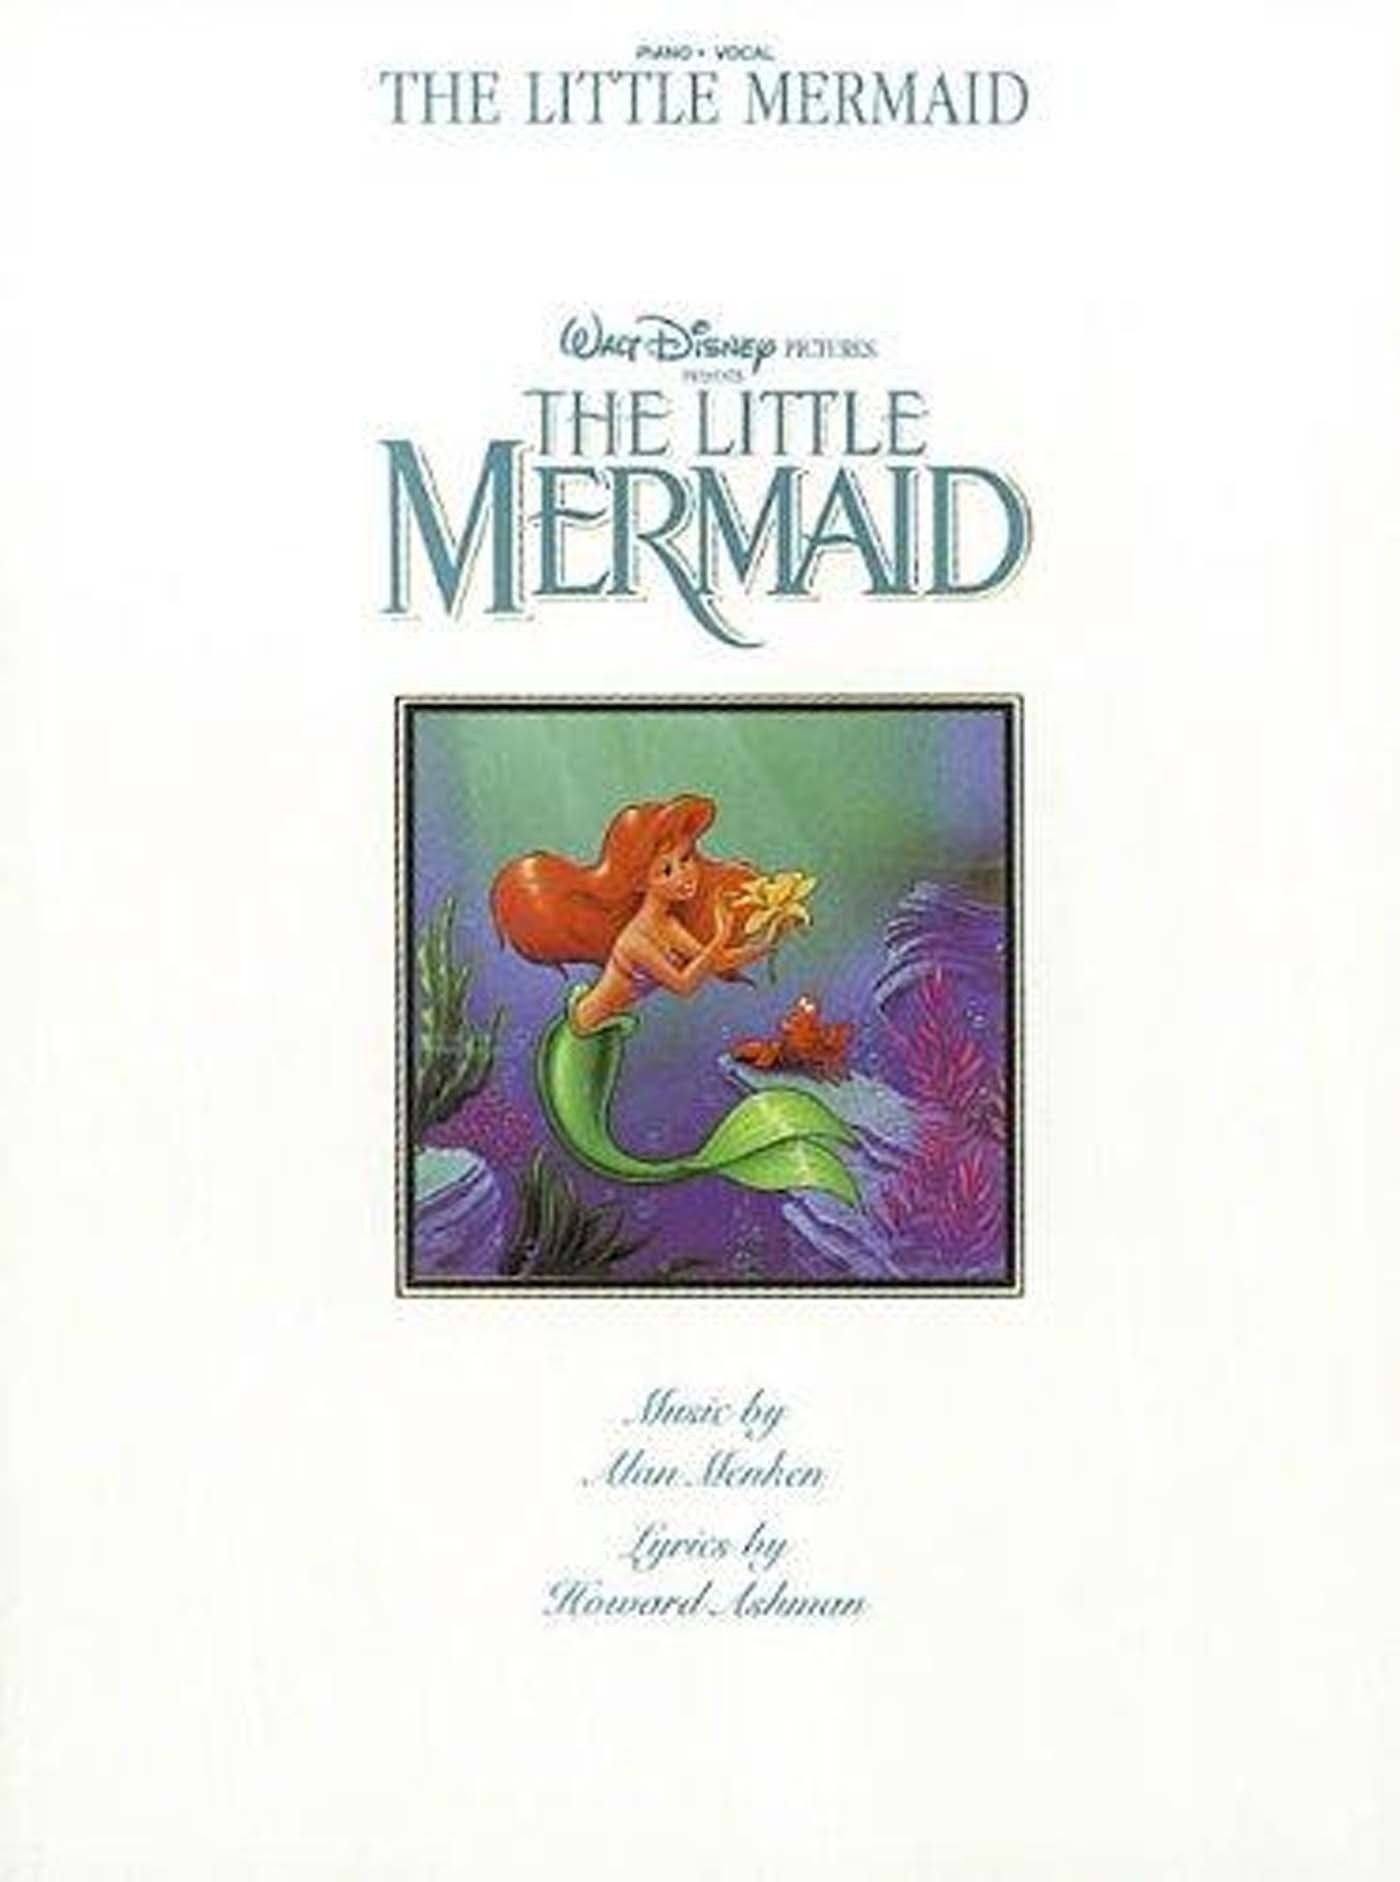 The Little Mermaid Piano Vocal Book Disney Film Movie Soundtracks S96